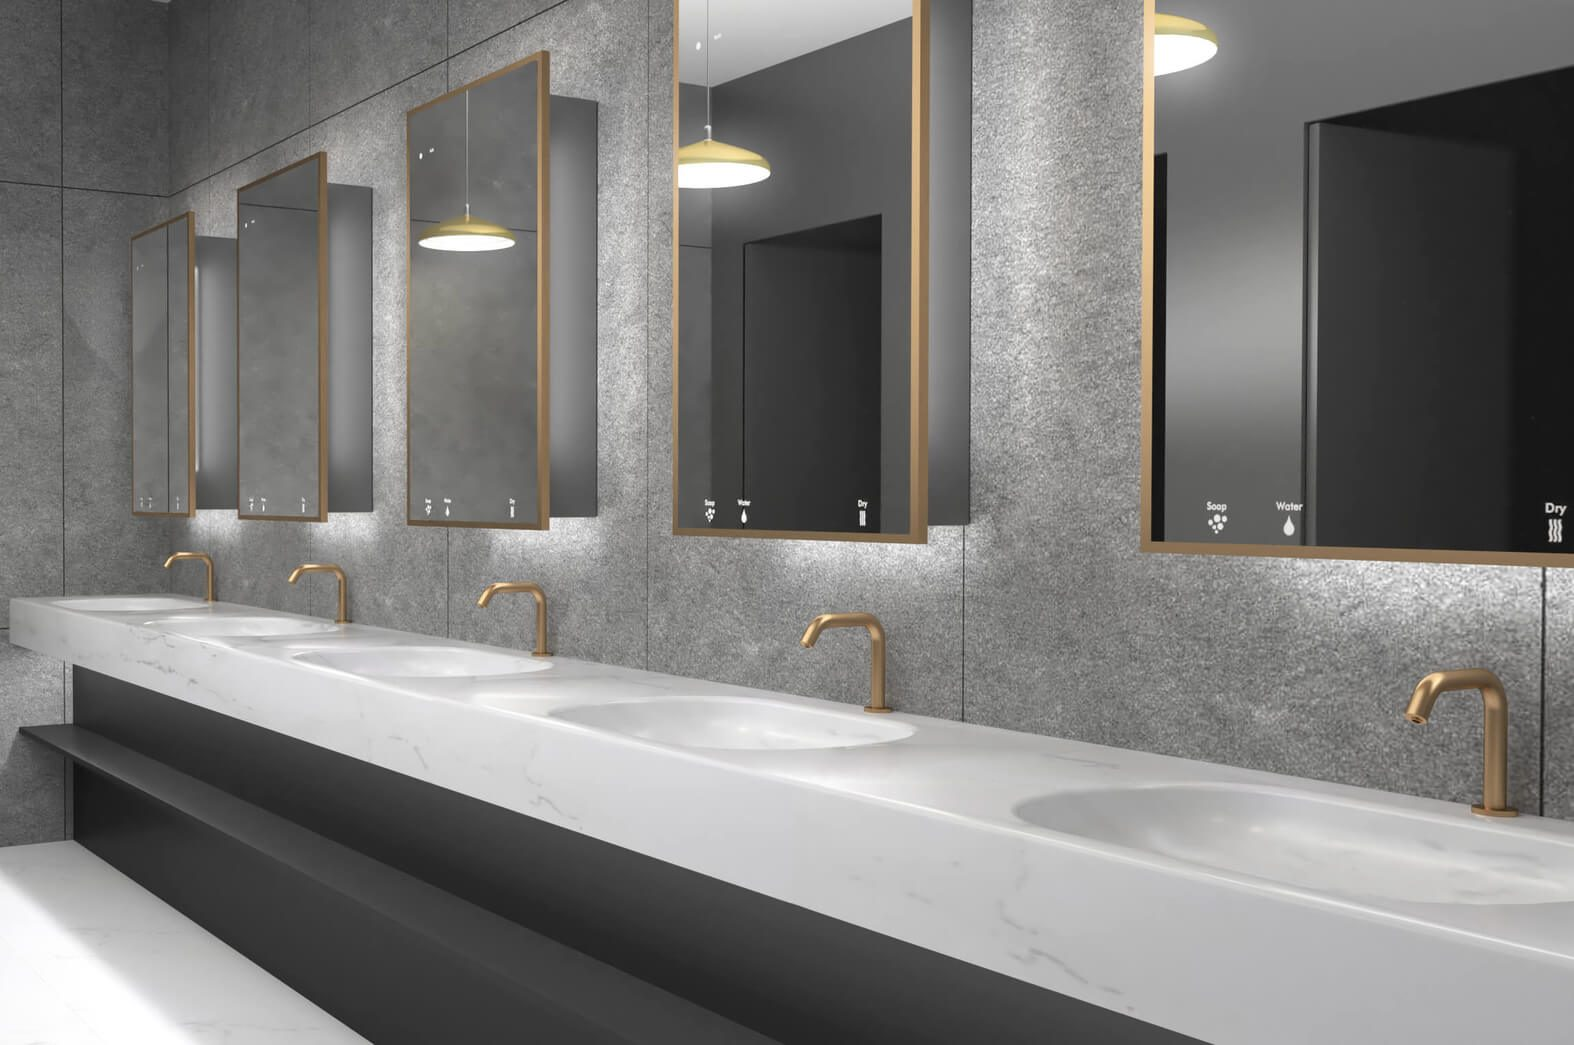 Specialty Product Hardware's Commercial Washroom Mirror Suppliers